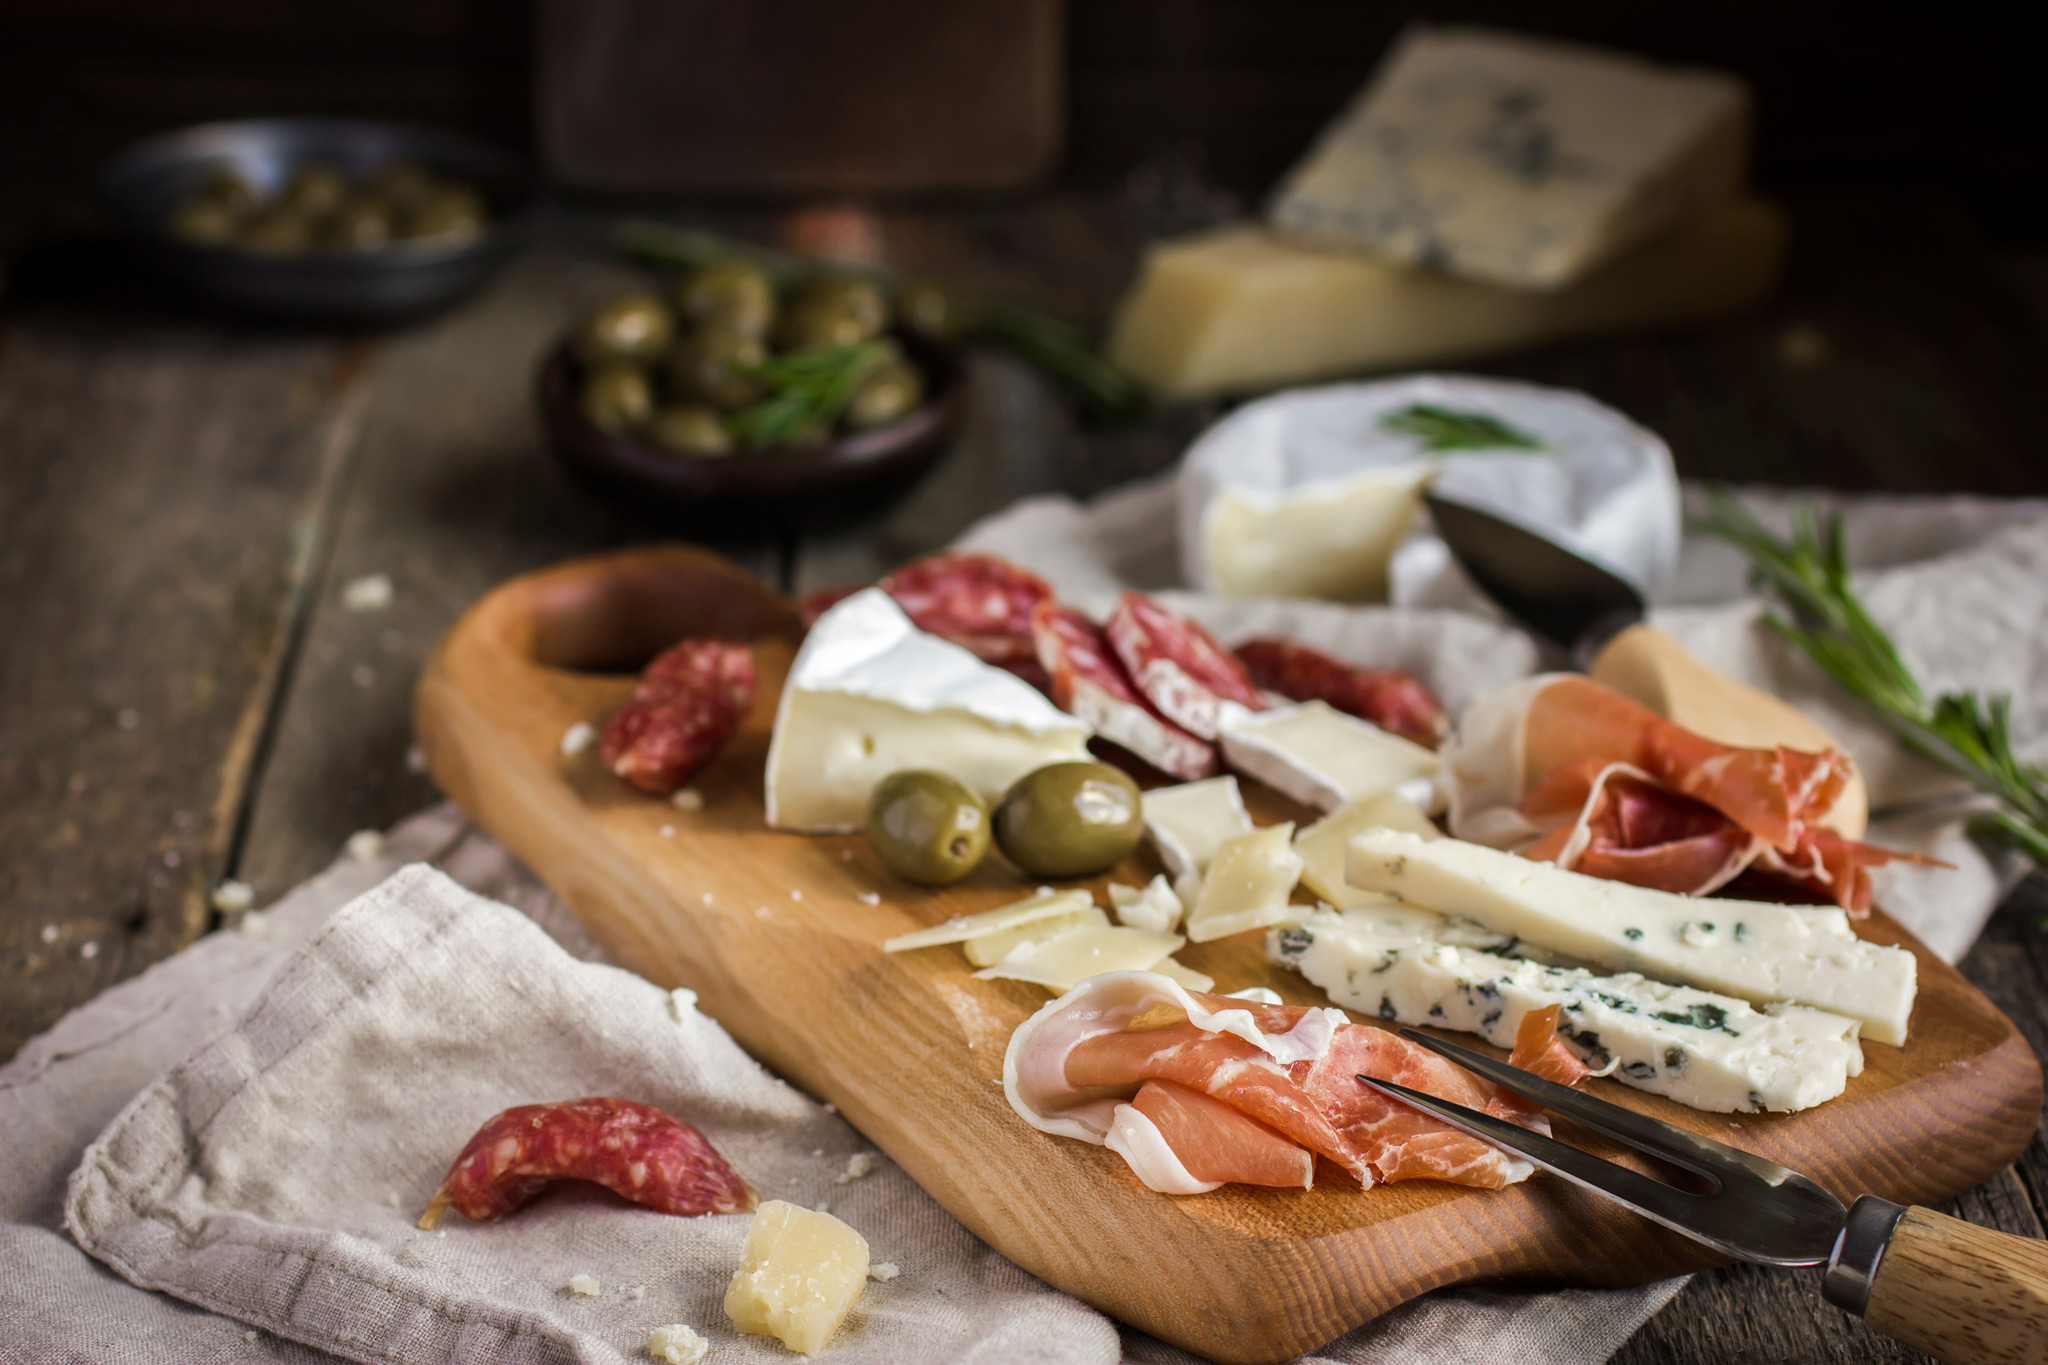 10 Best Cheese & Charcuterie Boards in St. Petersburg, FL 2016